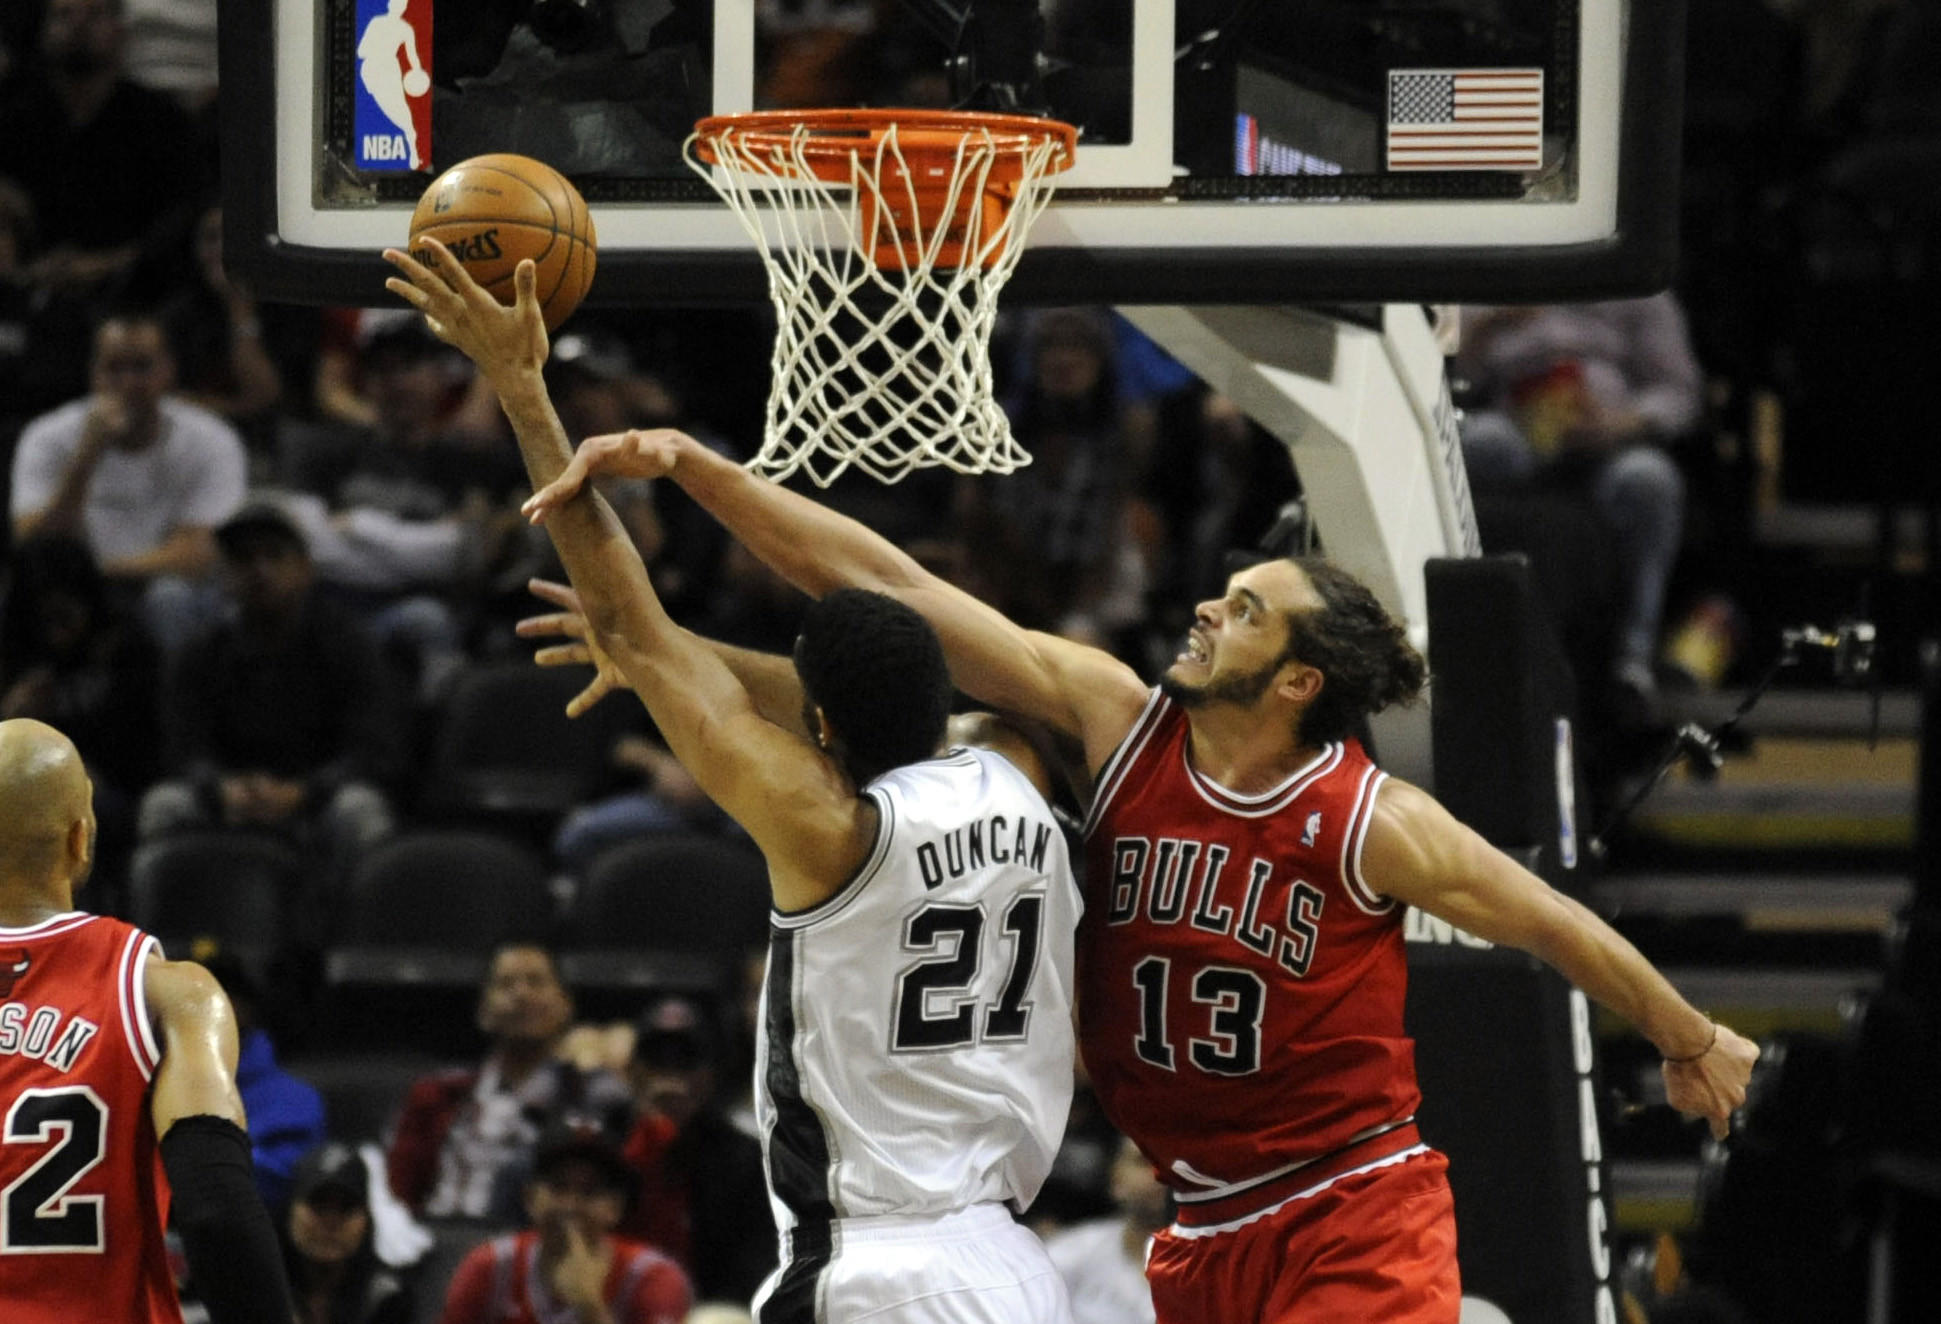 Bulls center Joakim Noah fouls San Antonio Spurs forward Tim Duncan during the second half at the AT&T Center.